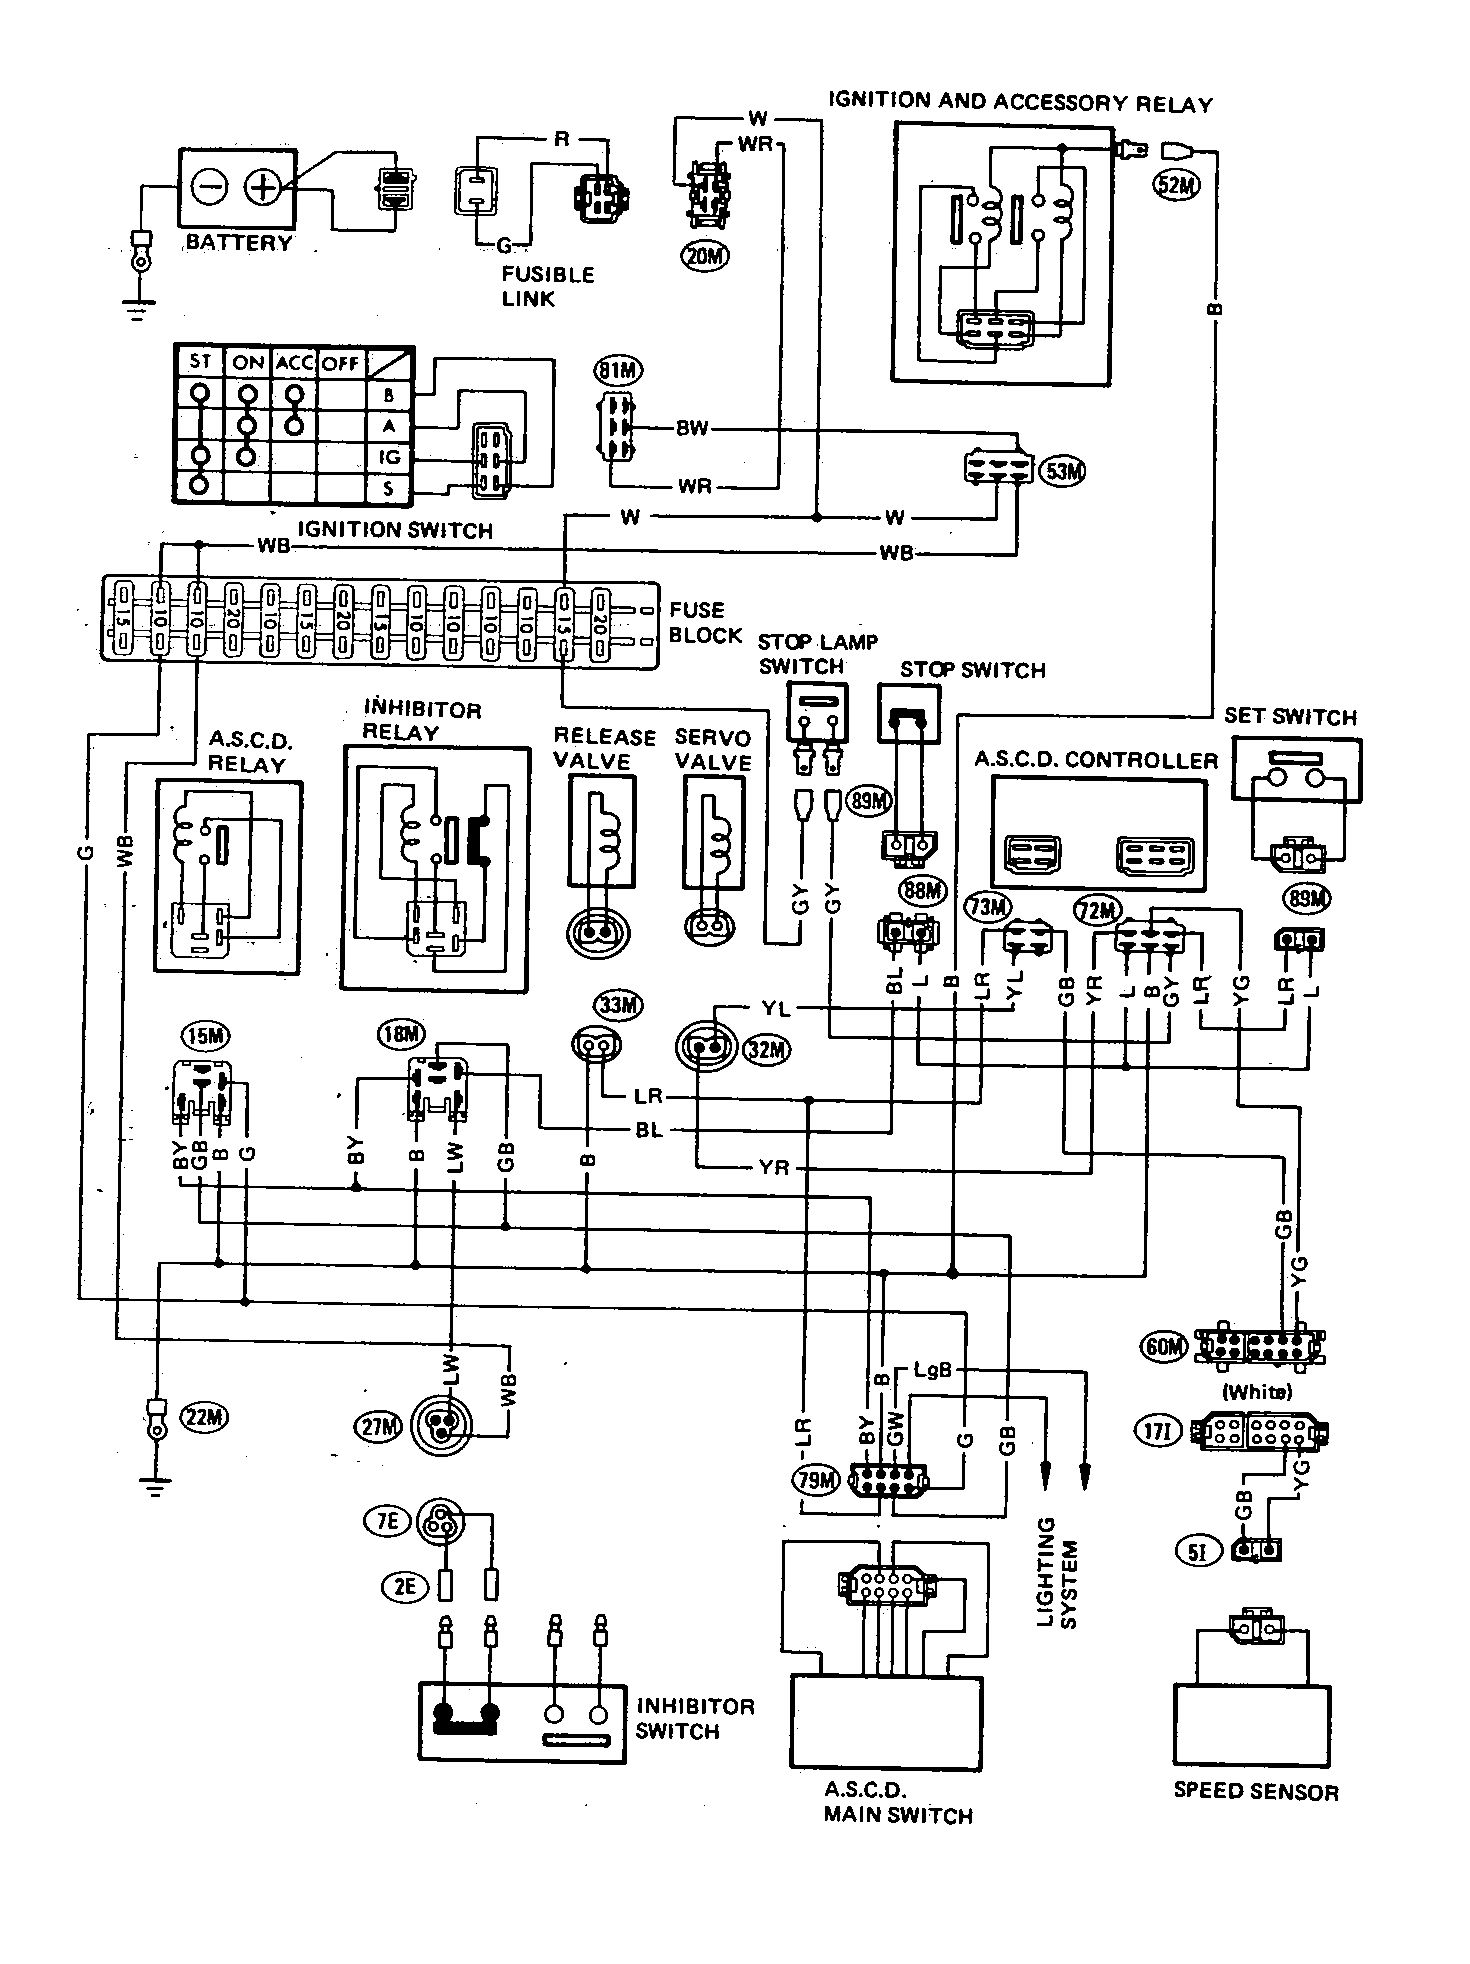 Painless Wiring Harness Duramax Schematics Data Diagrams Diagram Dodge 1995 Kodiak C8500 C5500 Elsalvadorla 1965 Chevelle Chevy Truck